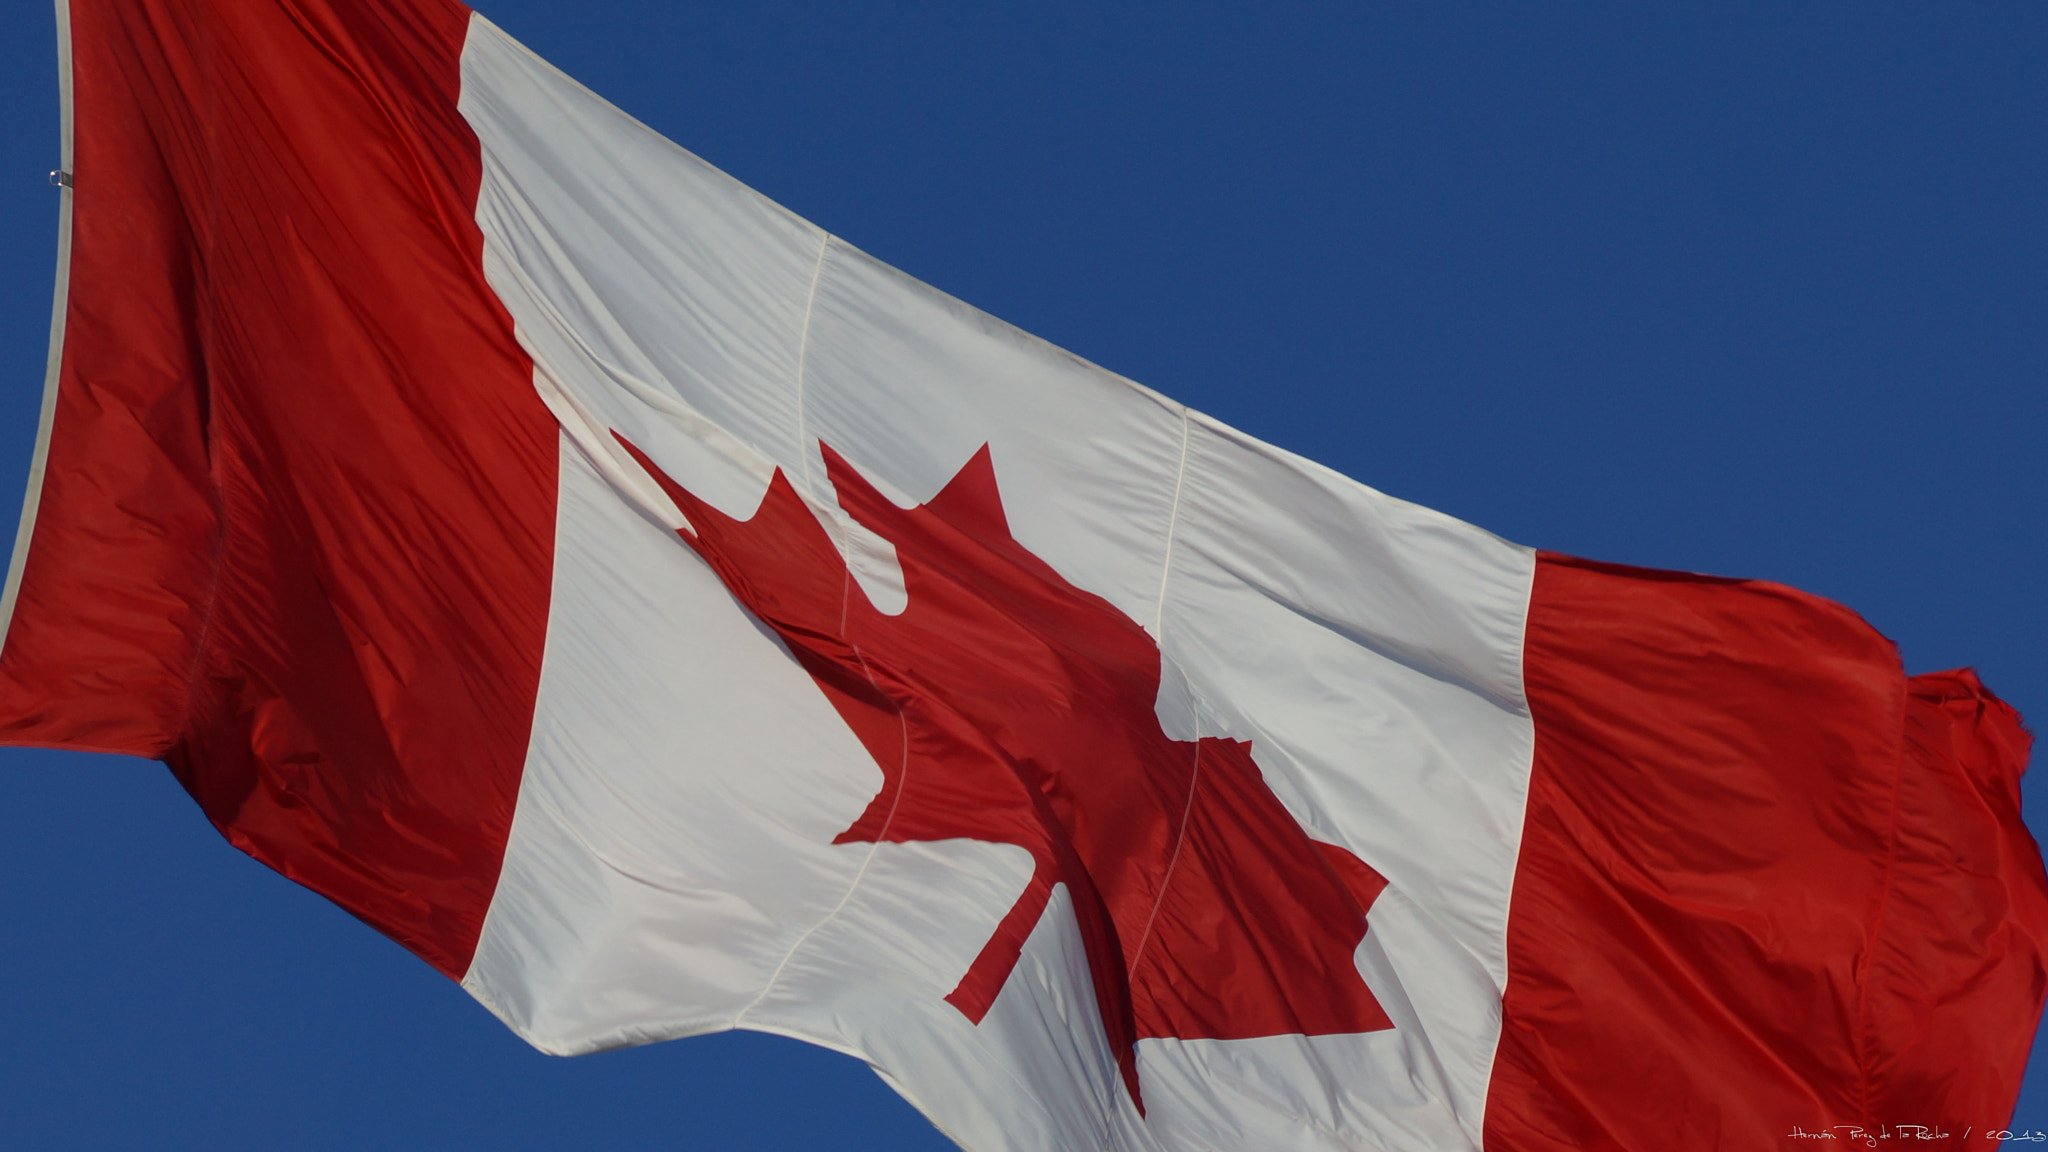 Photograph Canada's flag in the blue skies by HERNAN PEREZ on 500px